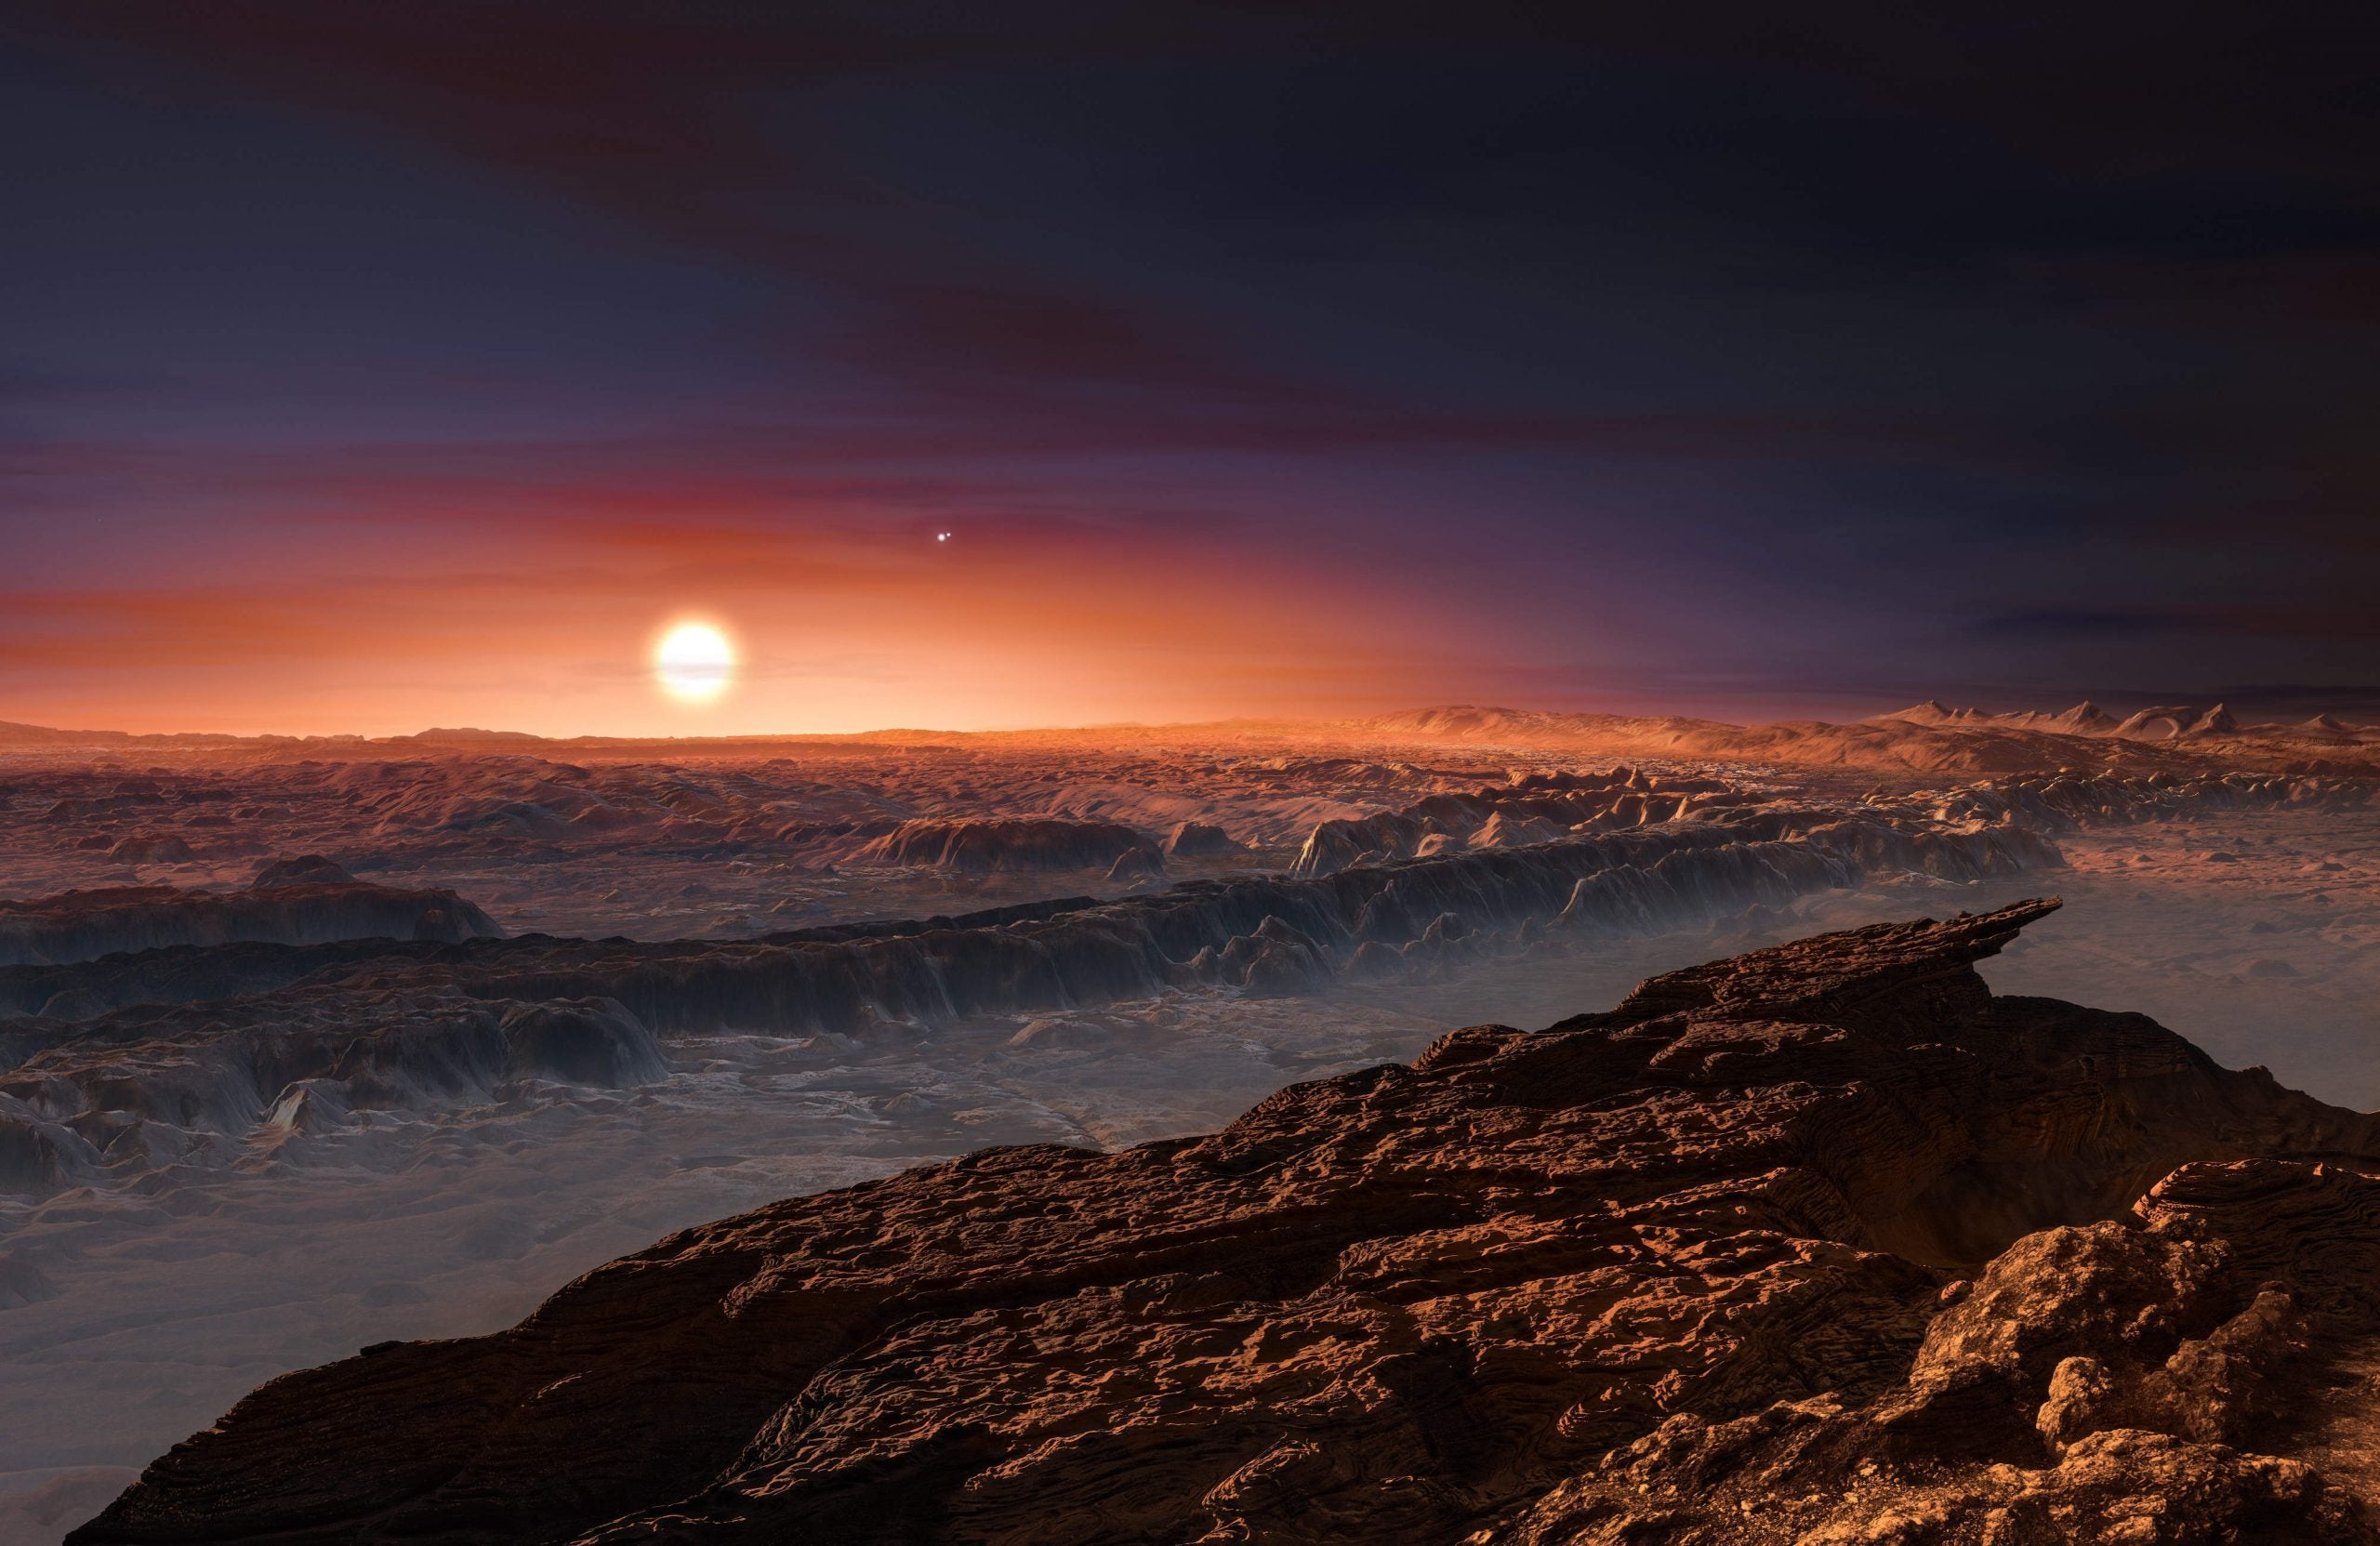 Closer to home: the discovery of a new exoplanet could help us find life beyond the solar system